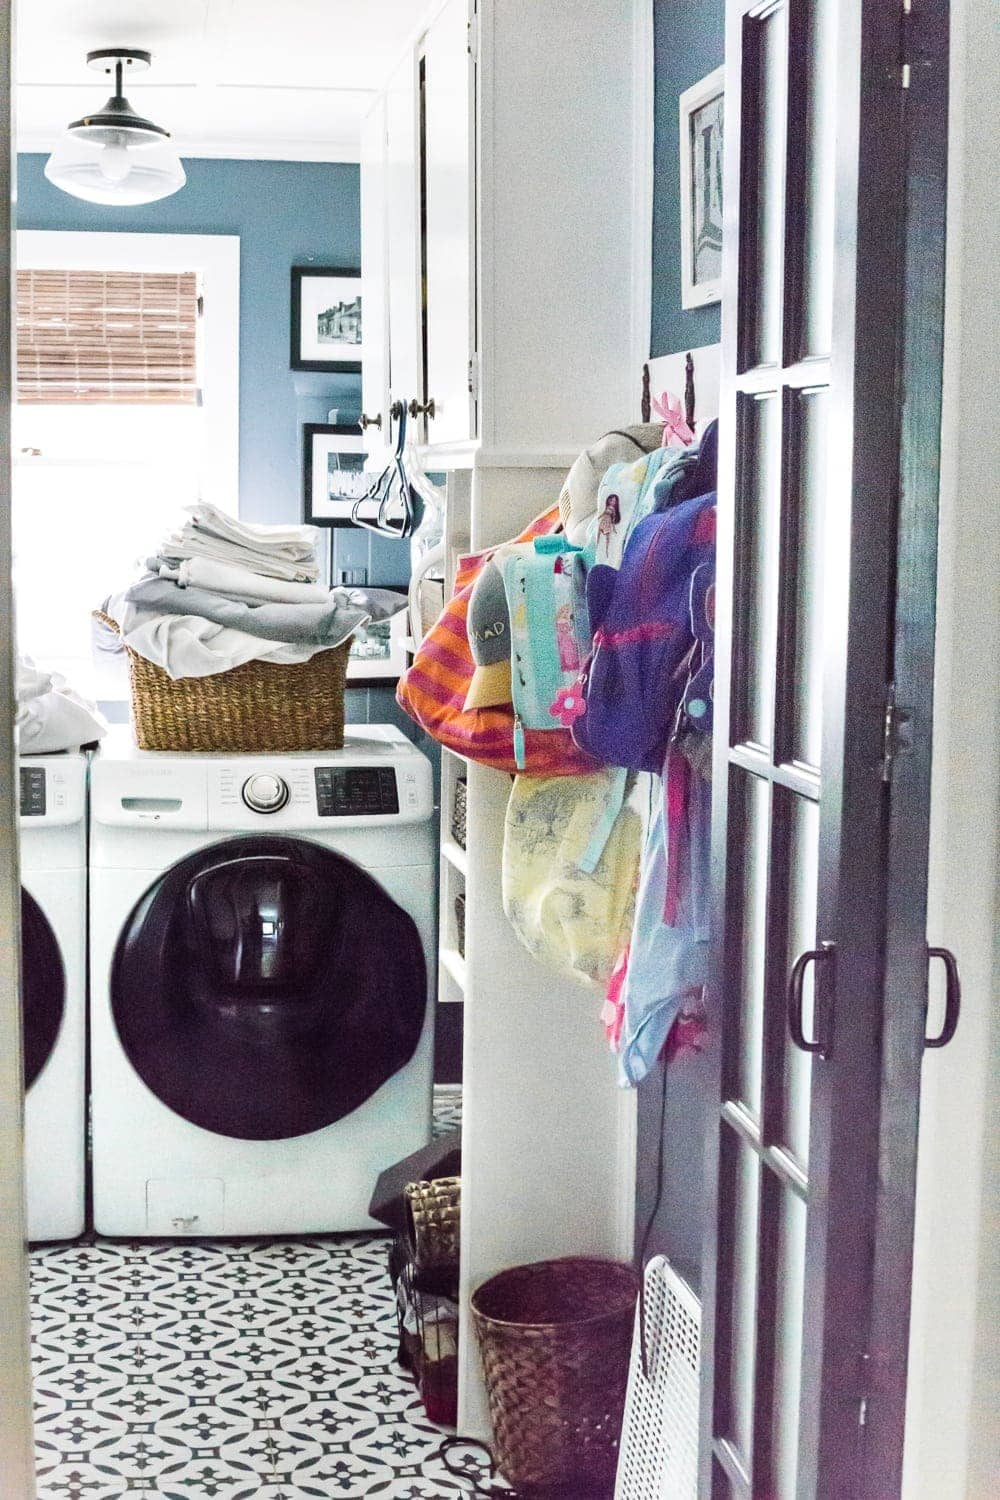 Real life laundry room